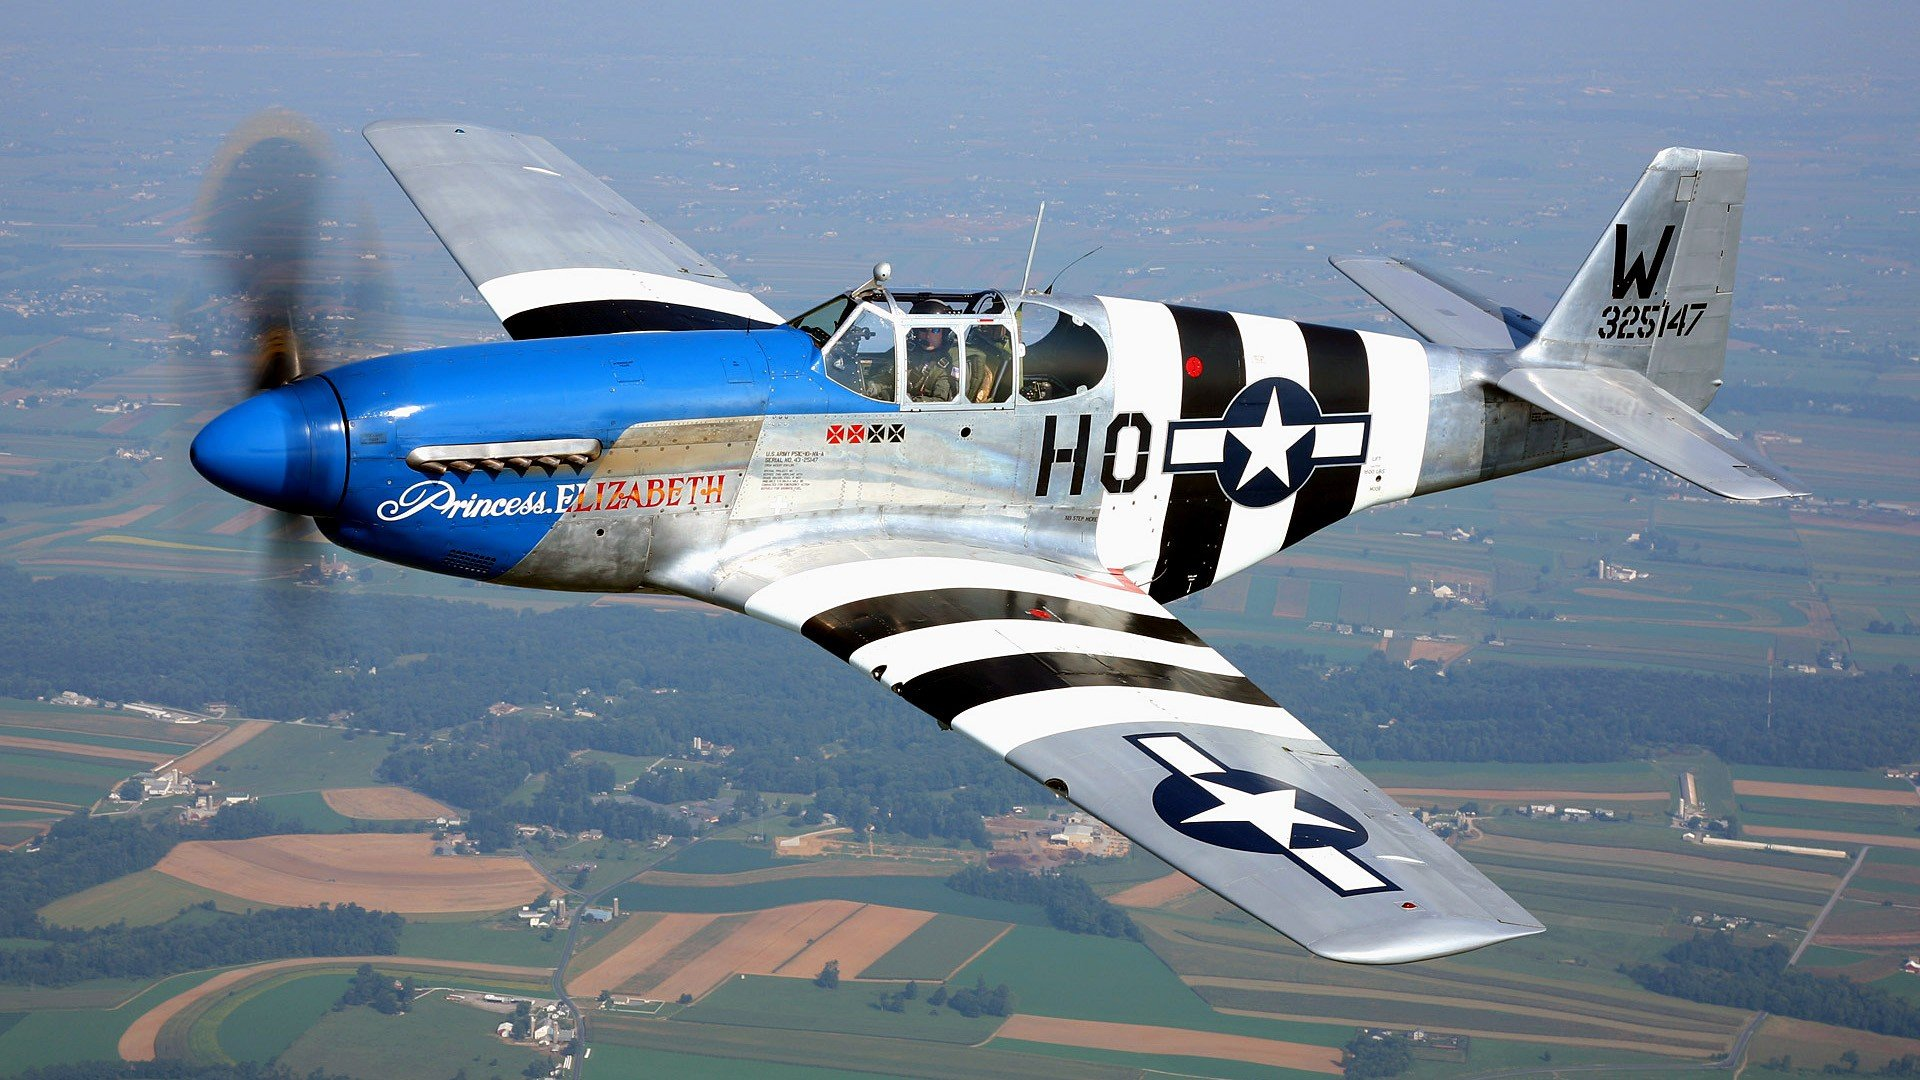 aircraft Warbird P 51 Mustang wallpaper background 1920x1080